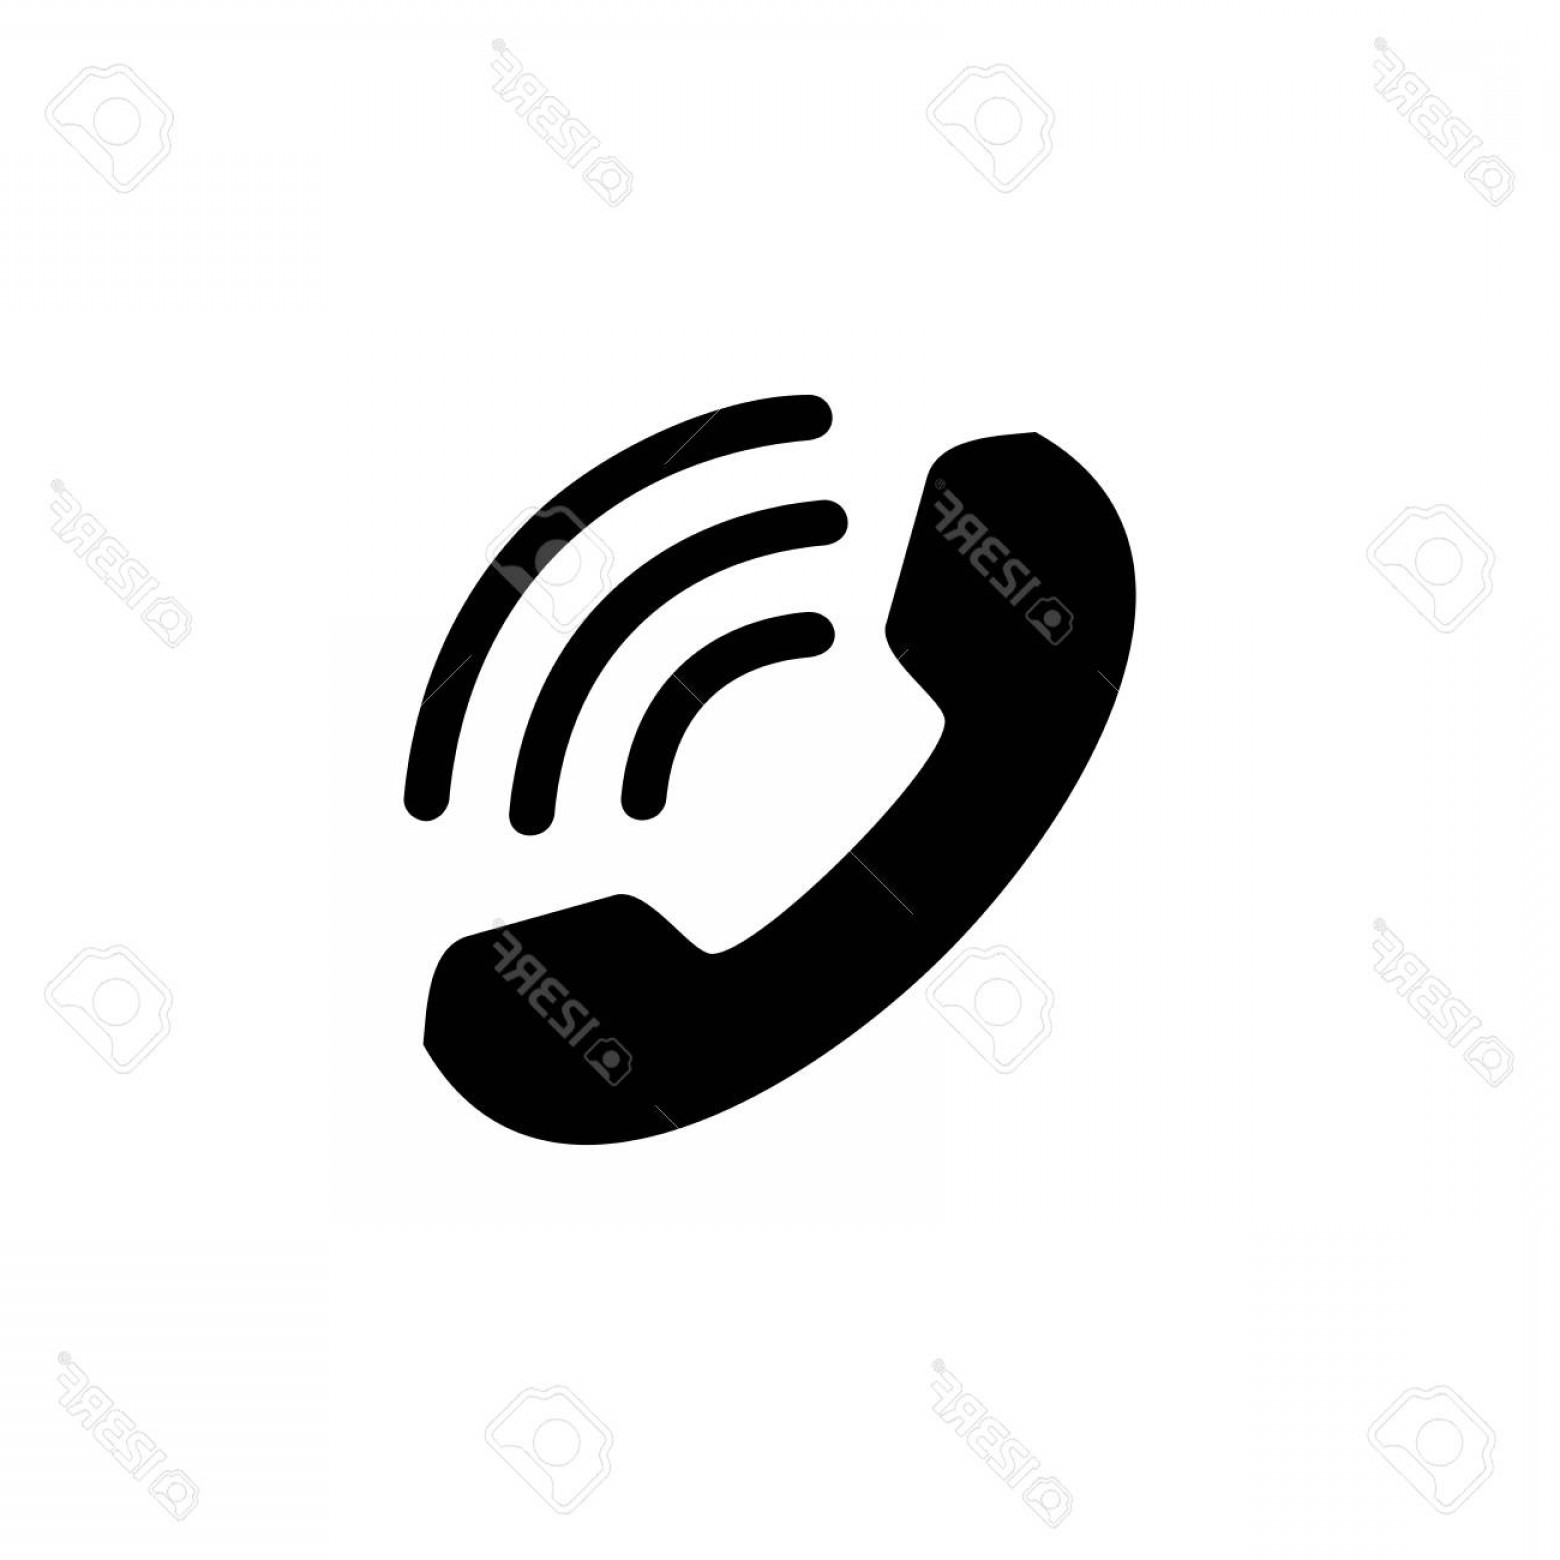 BBB Logo In Vector Form: Photostock Vector The Basic Logo Form Of A Vintage Telephone Receiver With A Hanger Receiver And Signal Sign